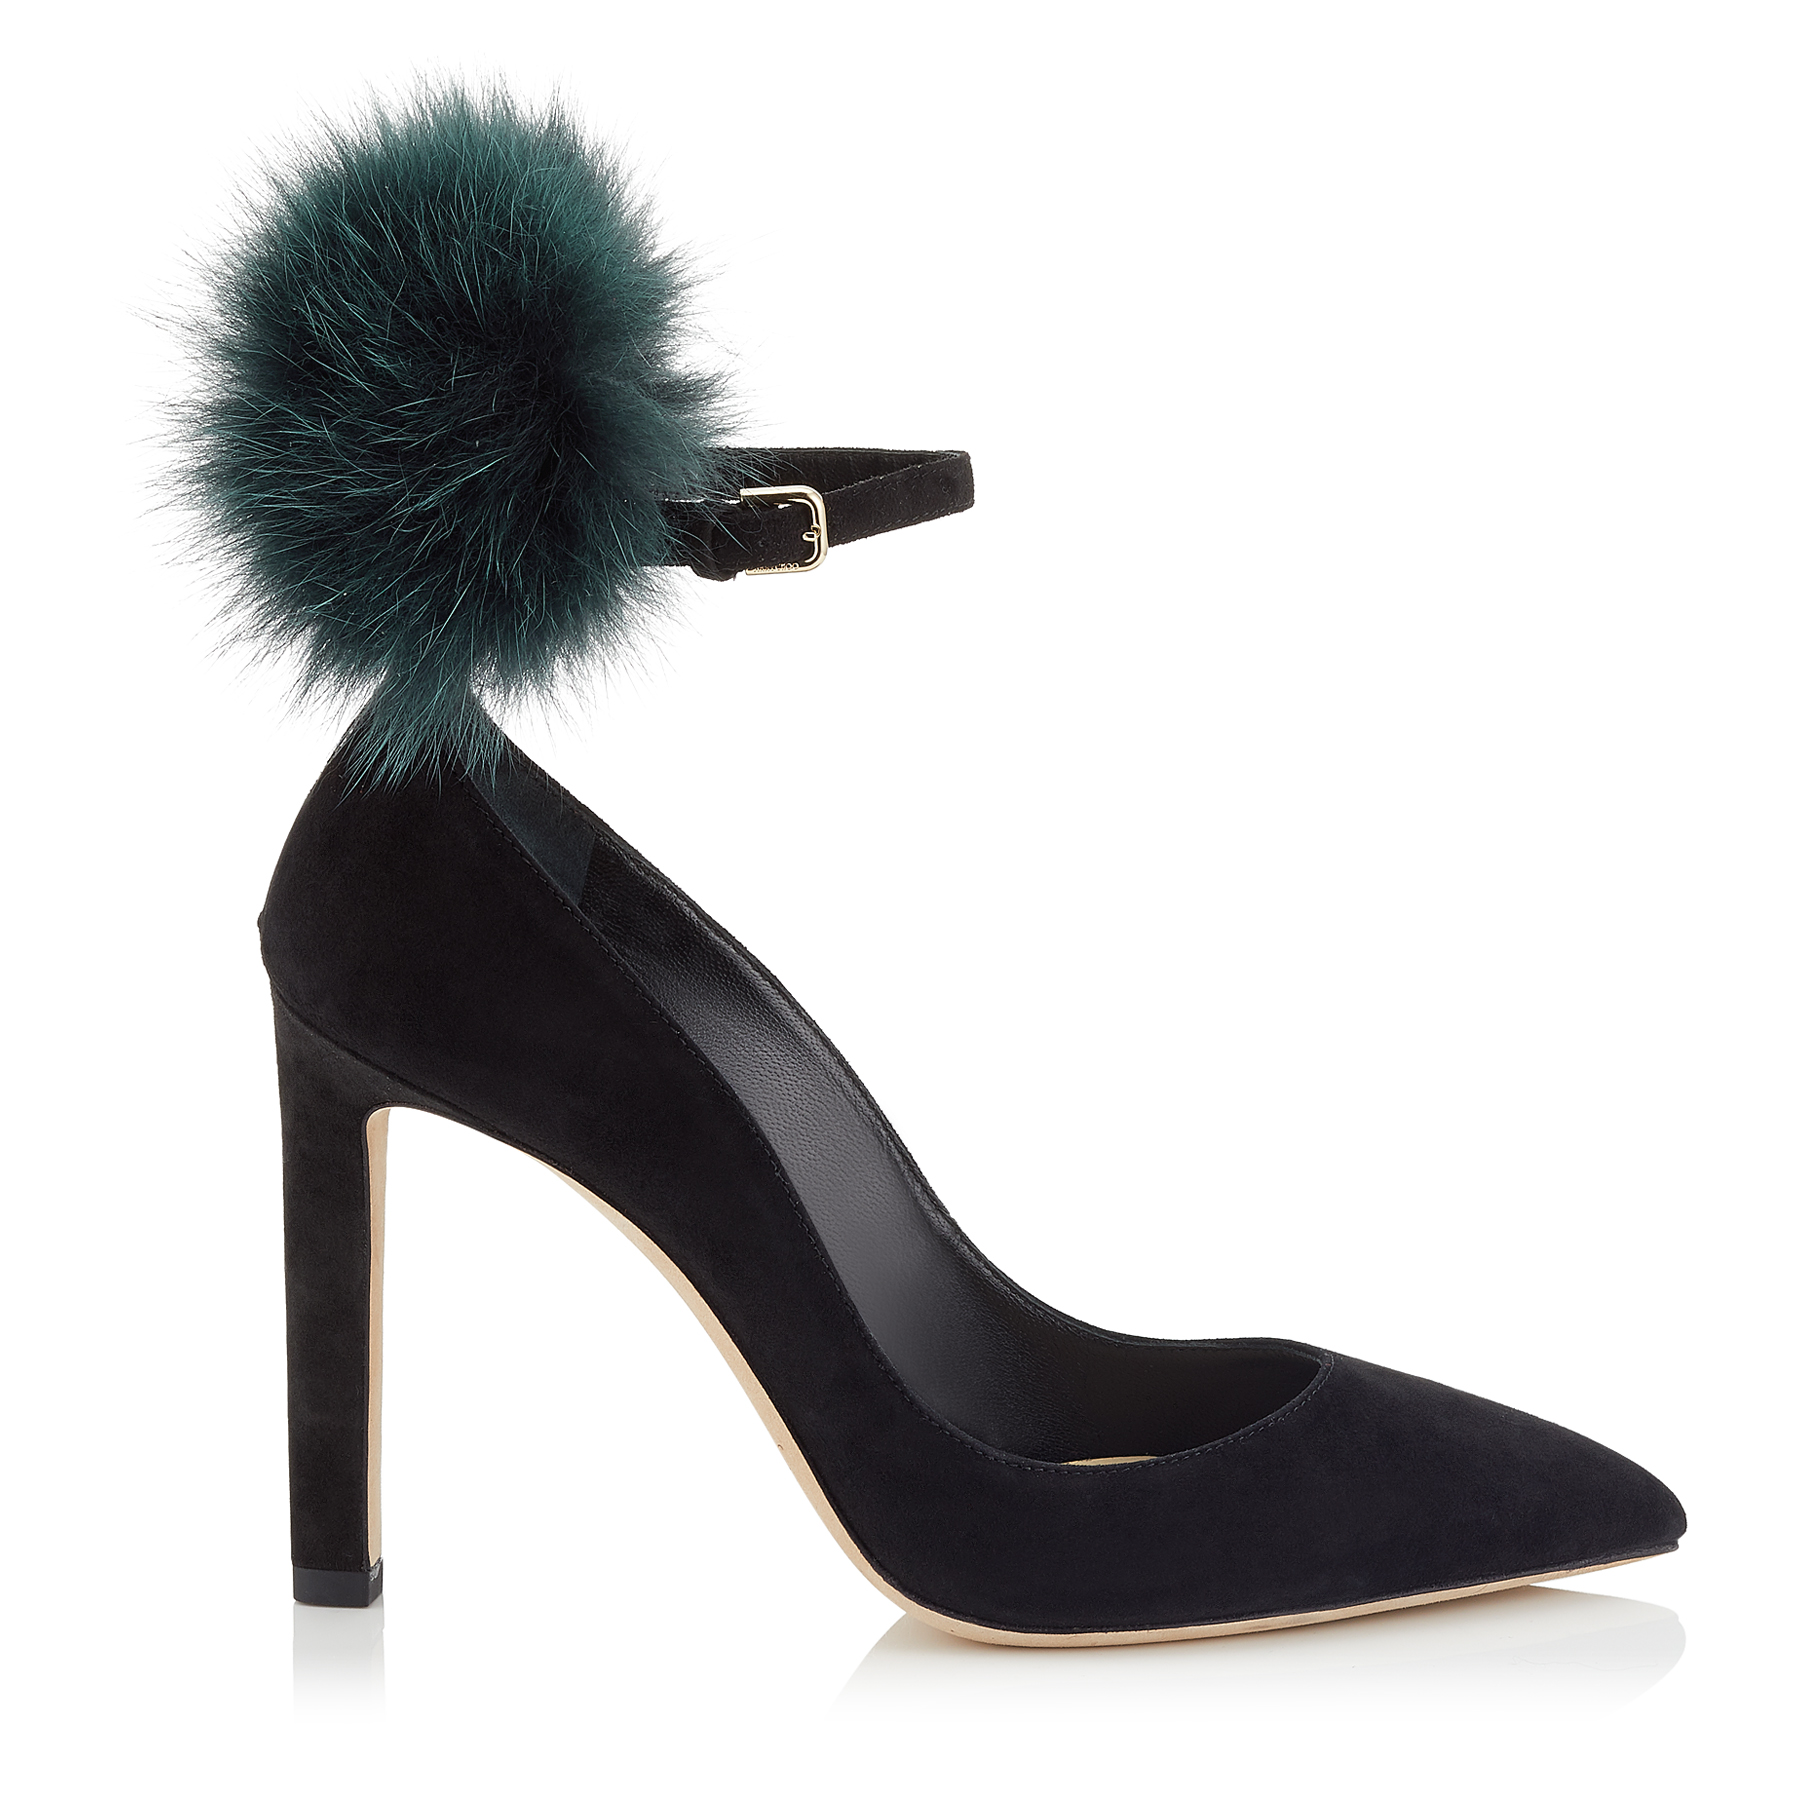 SOUTH 100 Black Suede Pumps with Bottle Green Fox Fur Pom Poms by Jimmy Choo